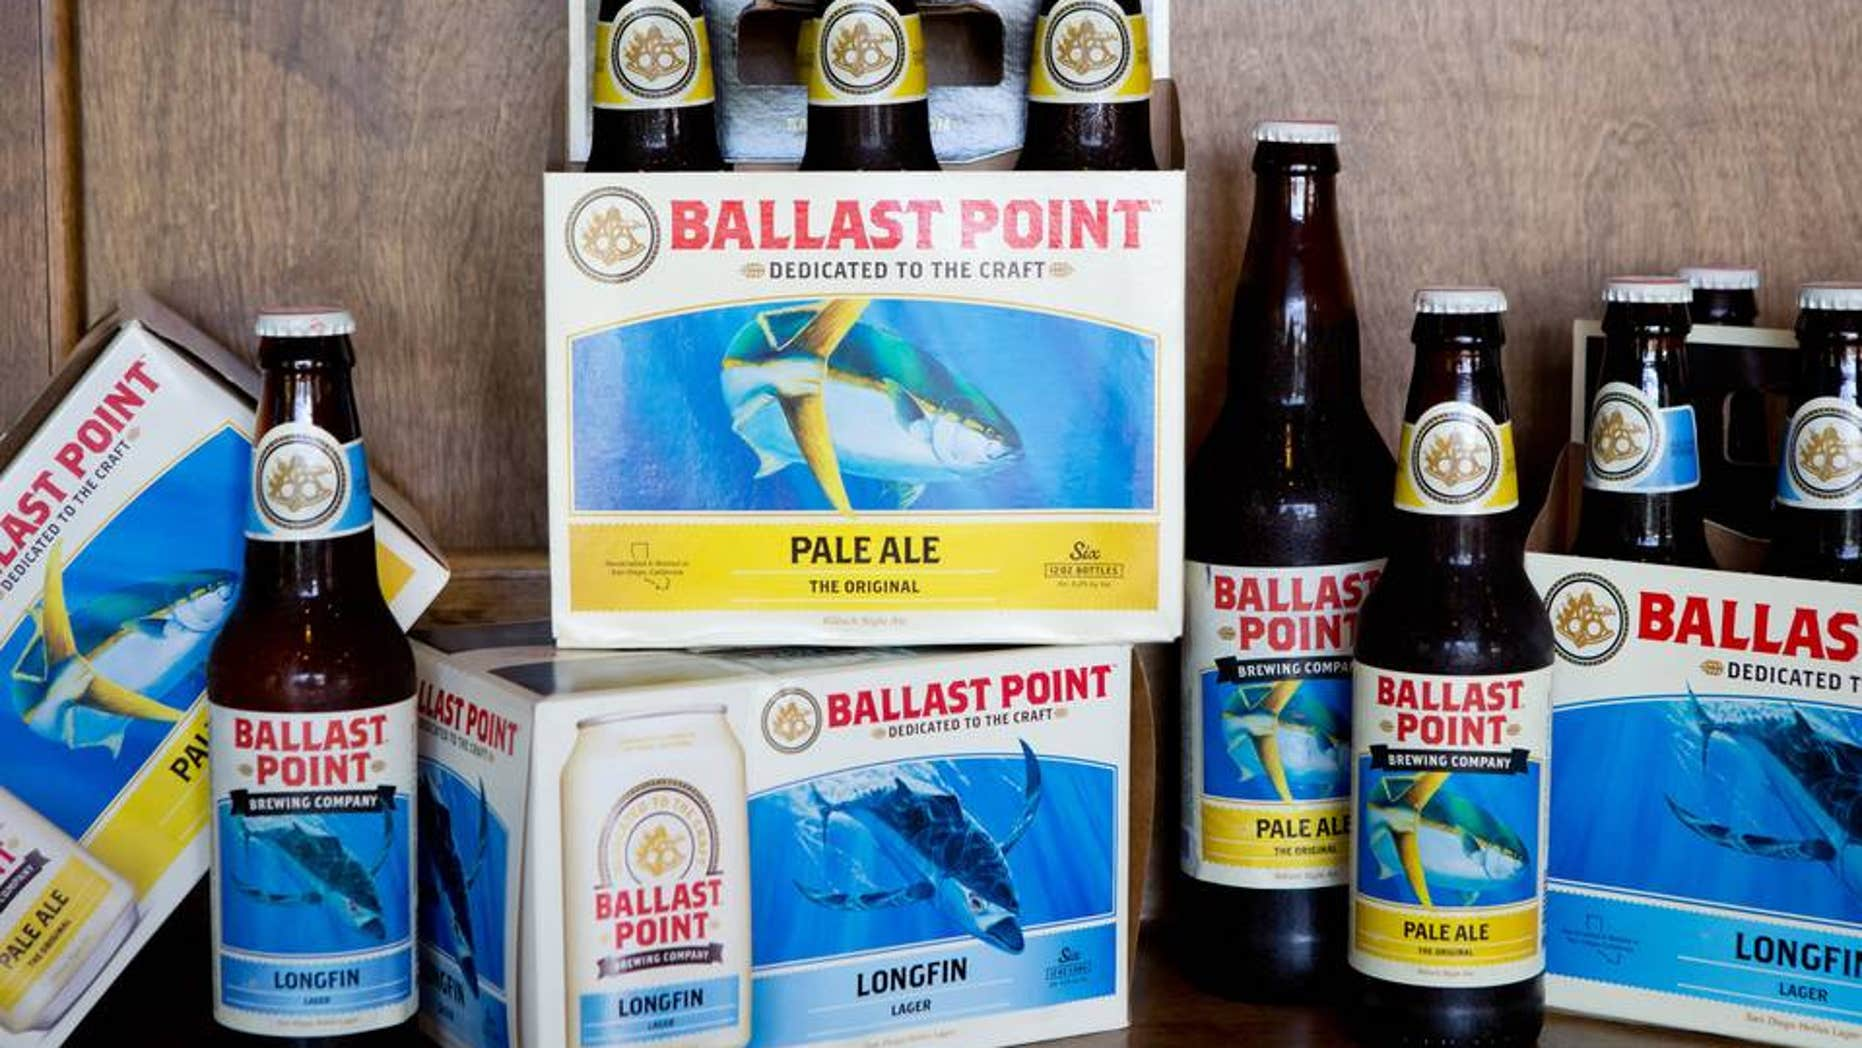 Constellation Brands has agreed to purchase San Diego -based craft brewery Ballast Point.